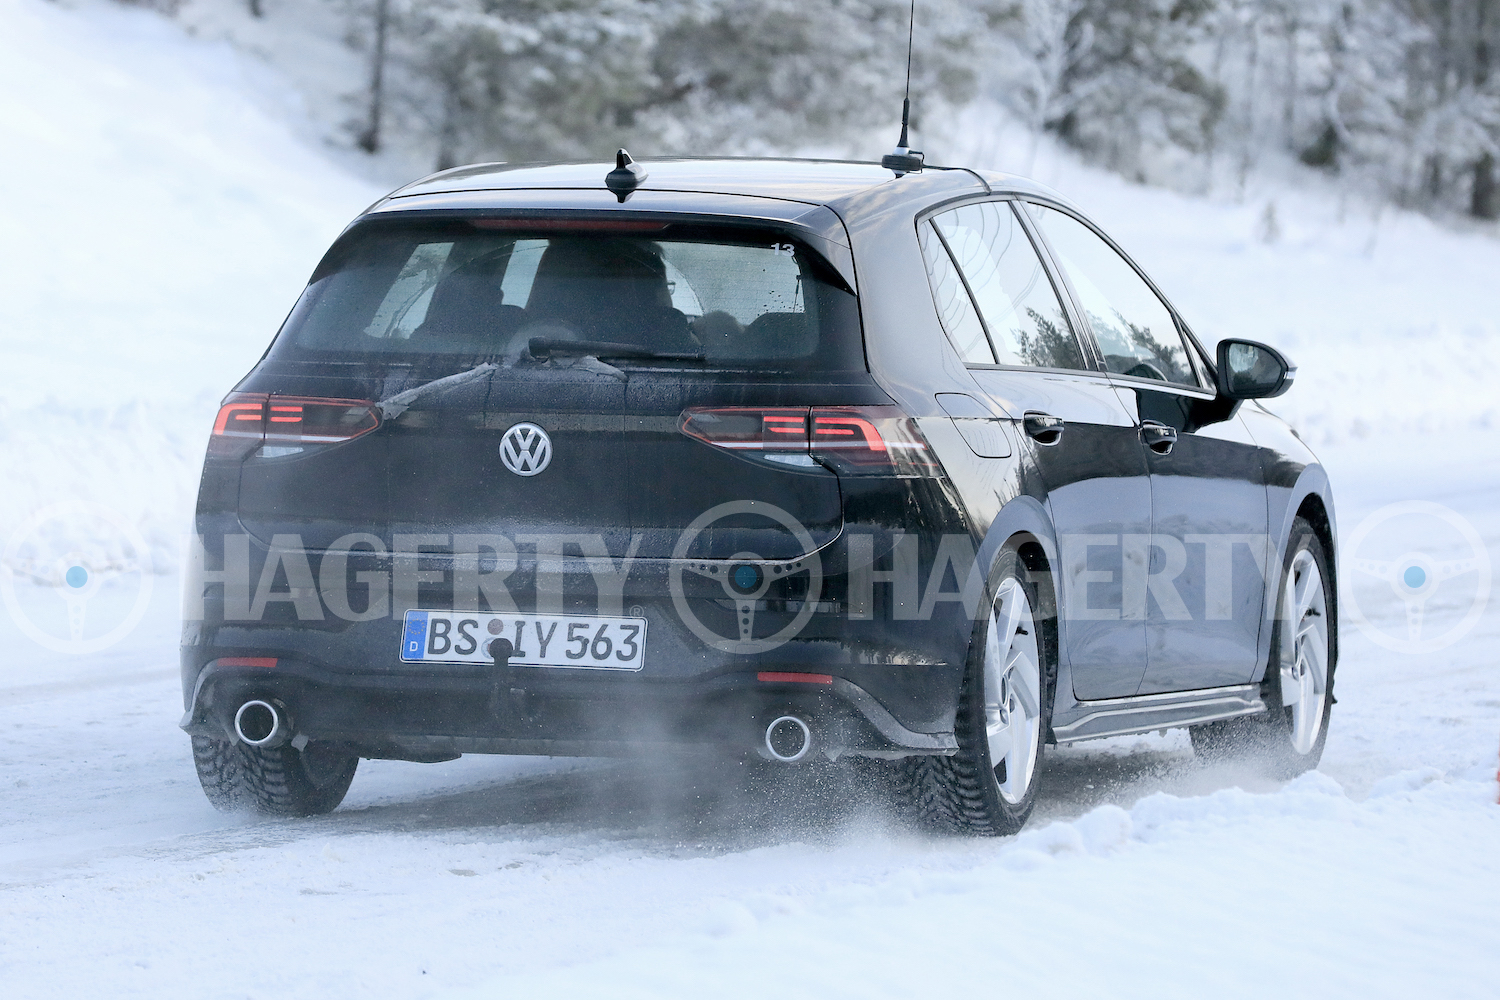 2020 Golf GTI to have 241 horsepower, Gold R to follow with 329 hp